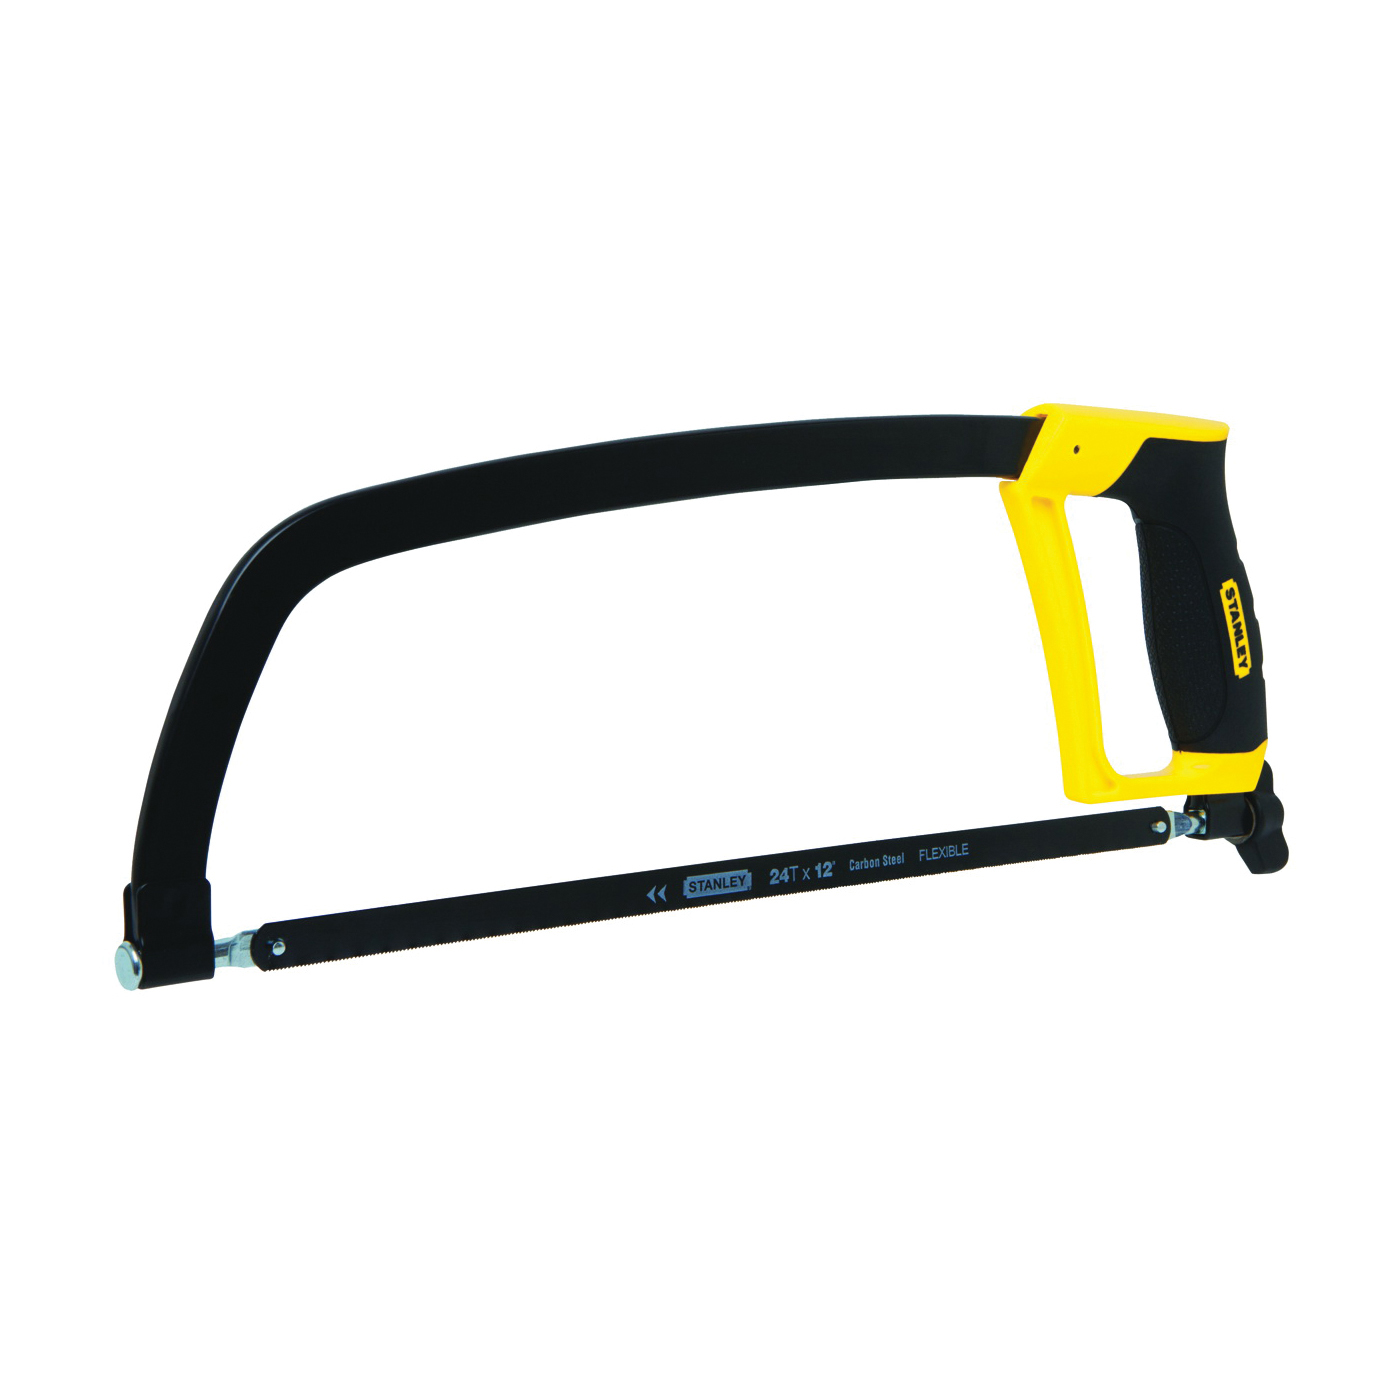 Picture of STANLEY STHT20139L Hacksaw, 12 in L Blade, 24 TPI, Steel Blade, 4-3/8 in D Throat, Metal Frame, Ergonomic Handle